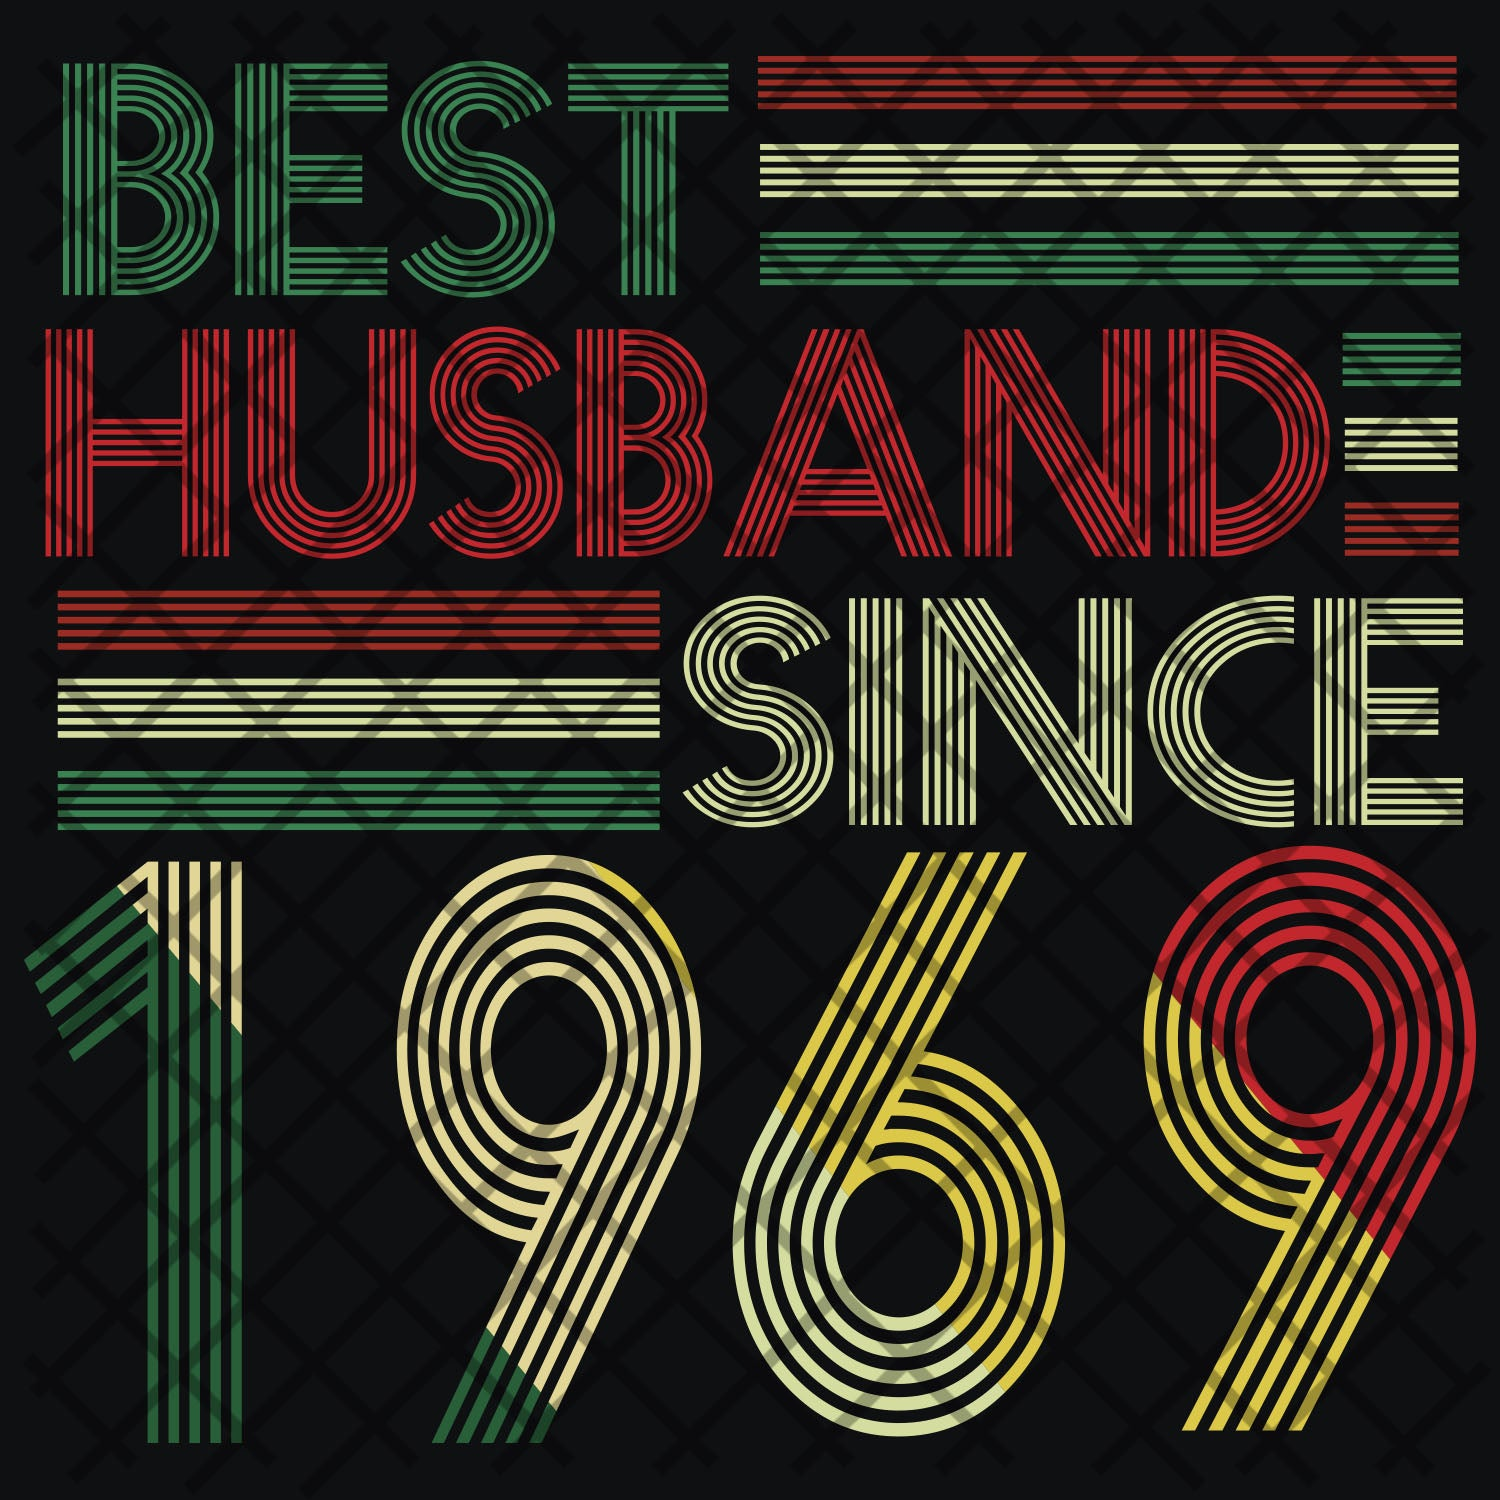 Best husband since 1969, husband svg, husband gift, husband shirt, love husband, best husband ever,family svg, family shirt,family gift,trending svg, Files For Silhouette, Files For Cricut, SVG, DXF, EPS, PNG, Instant Download